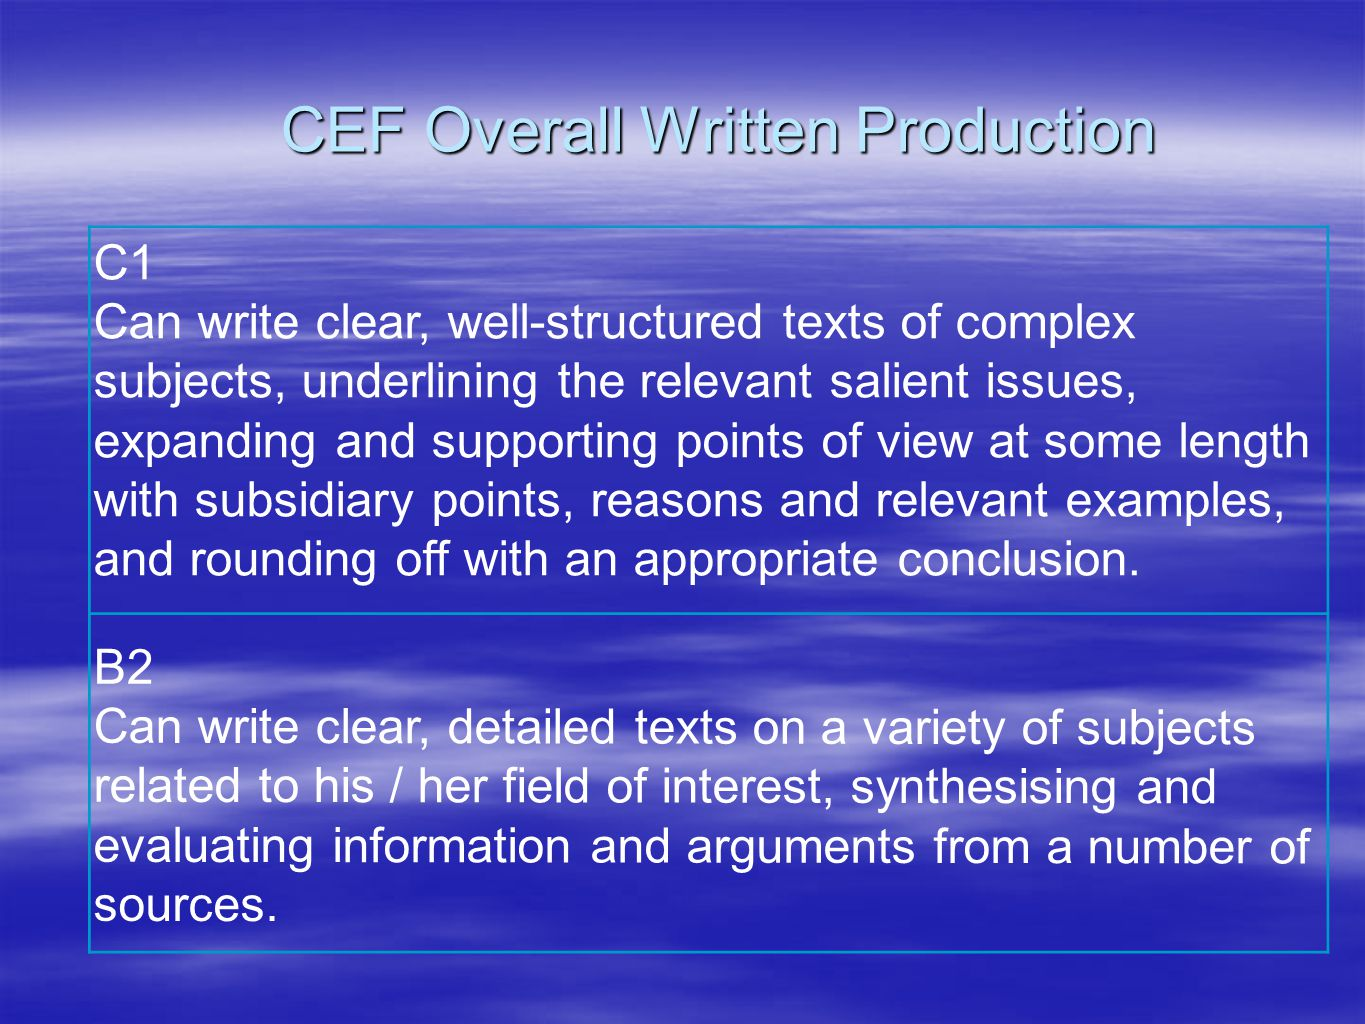 CEF Overall Written Production B2 Can write clear, detailed texts on a variety of subjects related to his / her field of interest, synthesising and evaluating information and arguments from a number of sources.